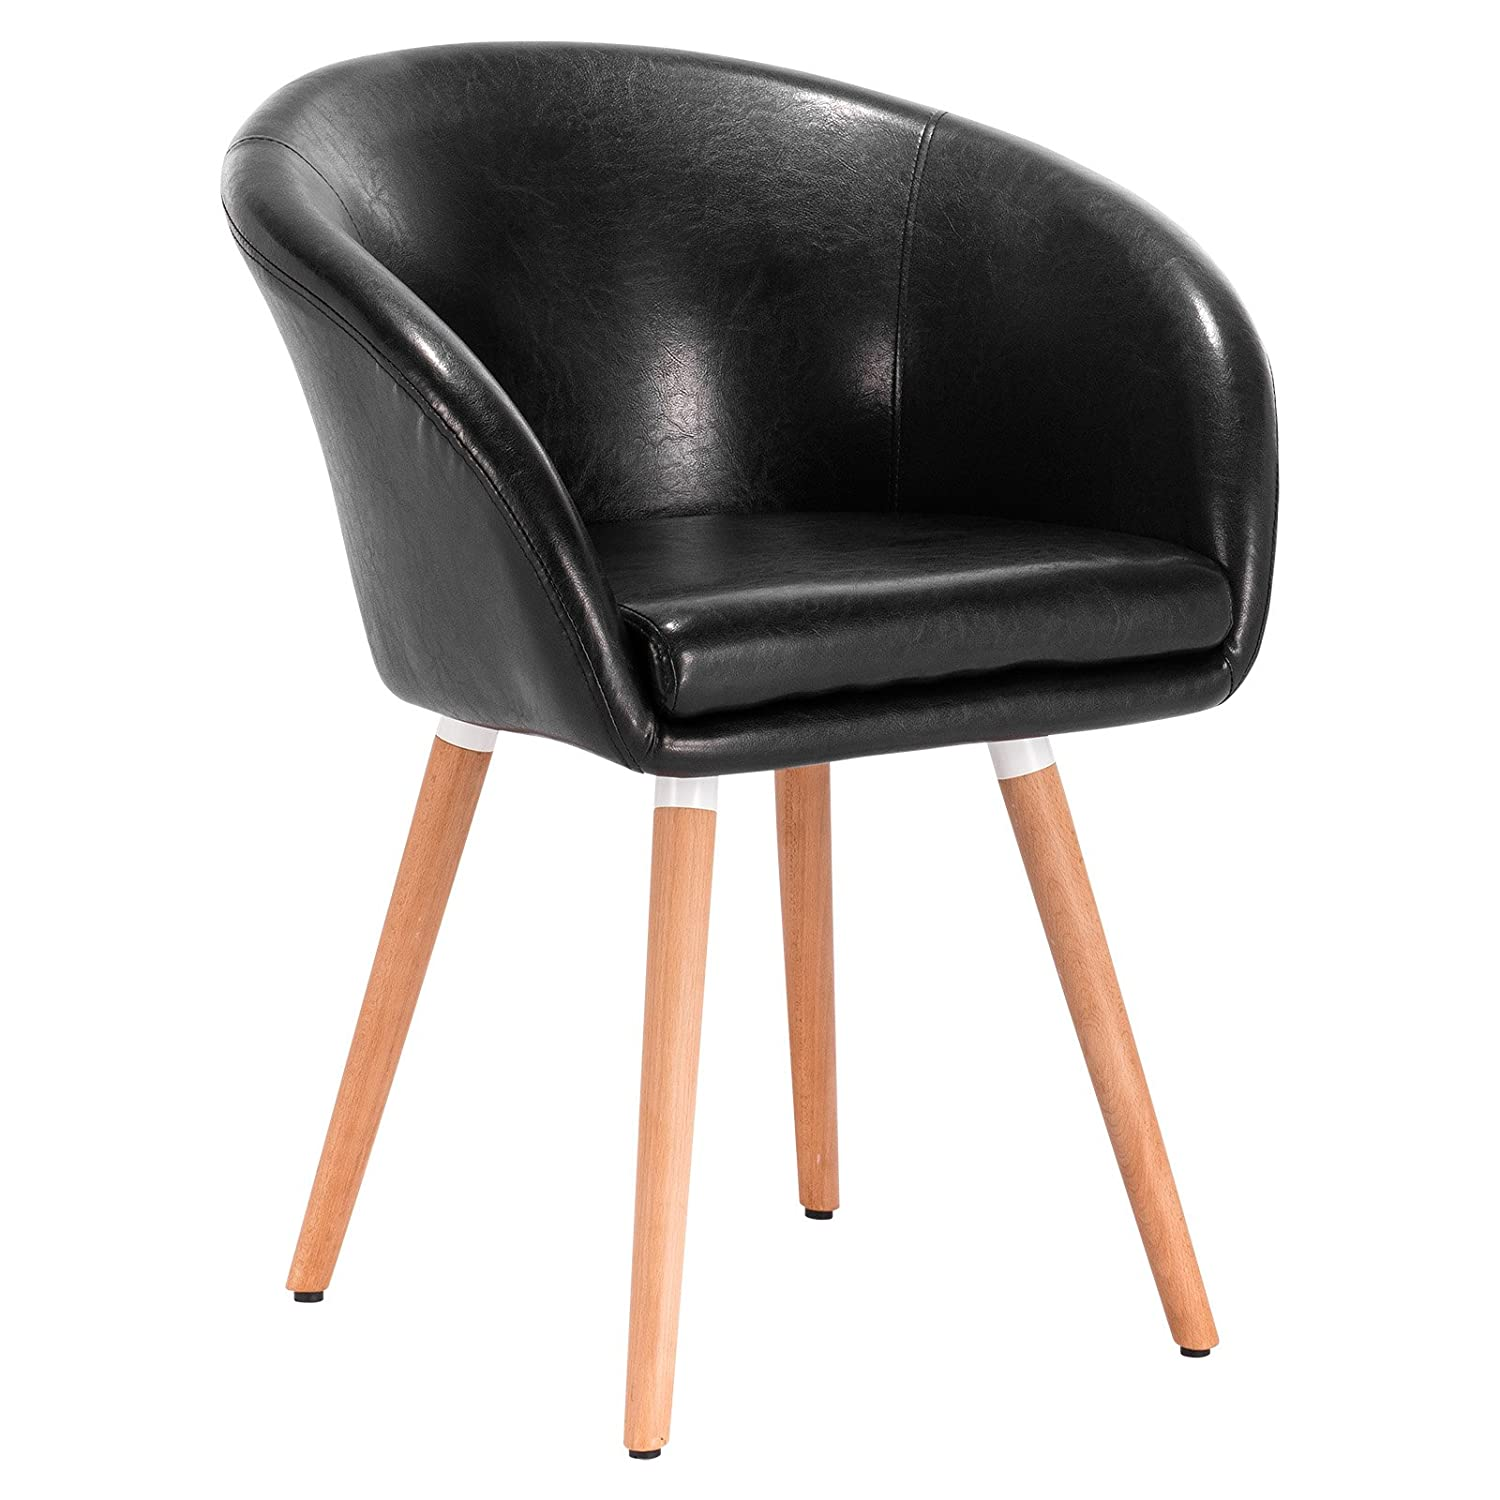 Sensational Details About Black Faux Leather Retro Vintage Padded Lounge Armchair Dining Room Tub Chair Pdpeps Interior Chair Design Pdpepsorg